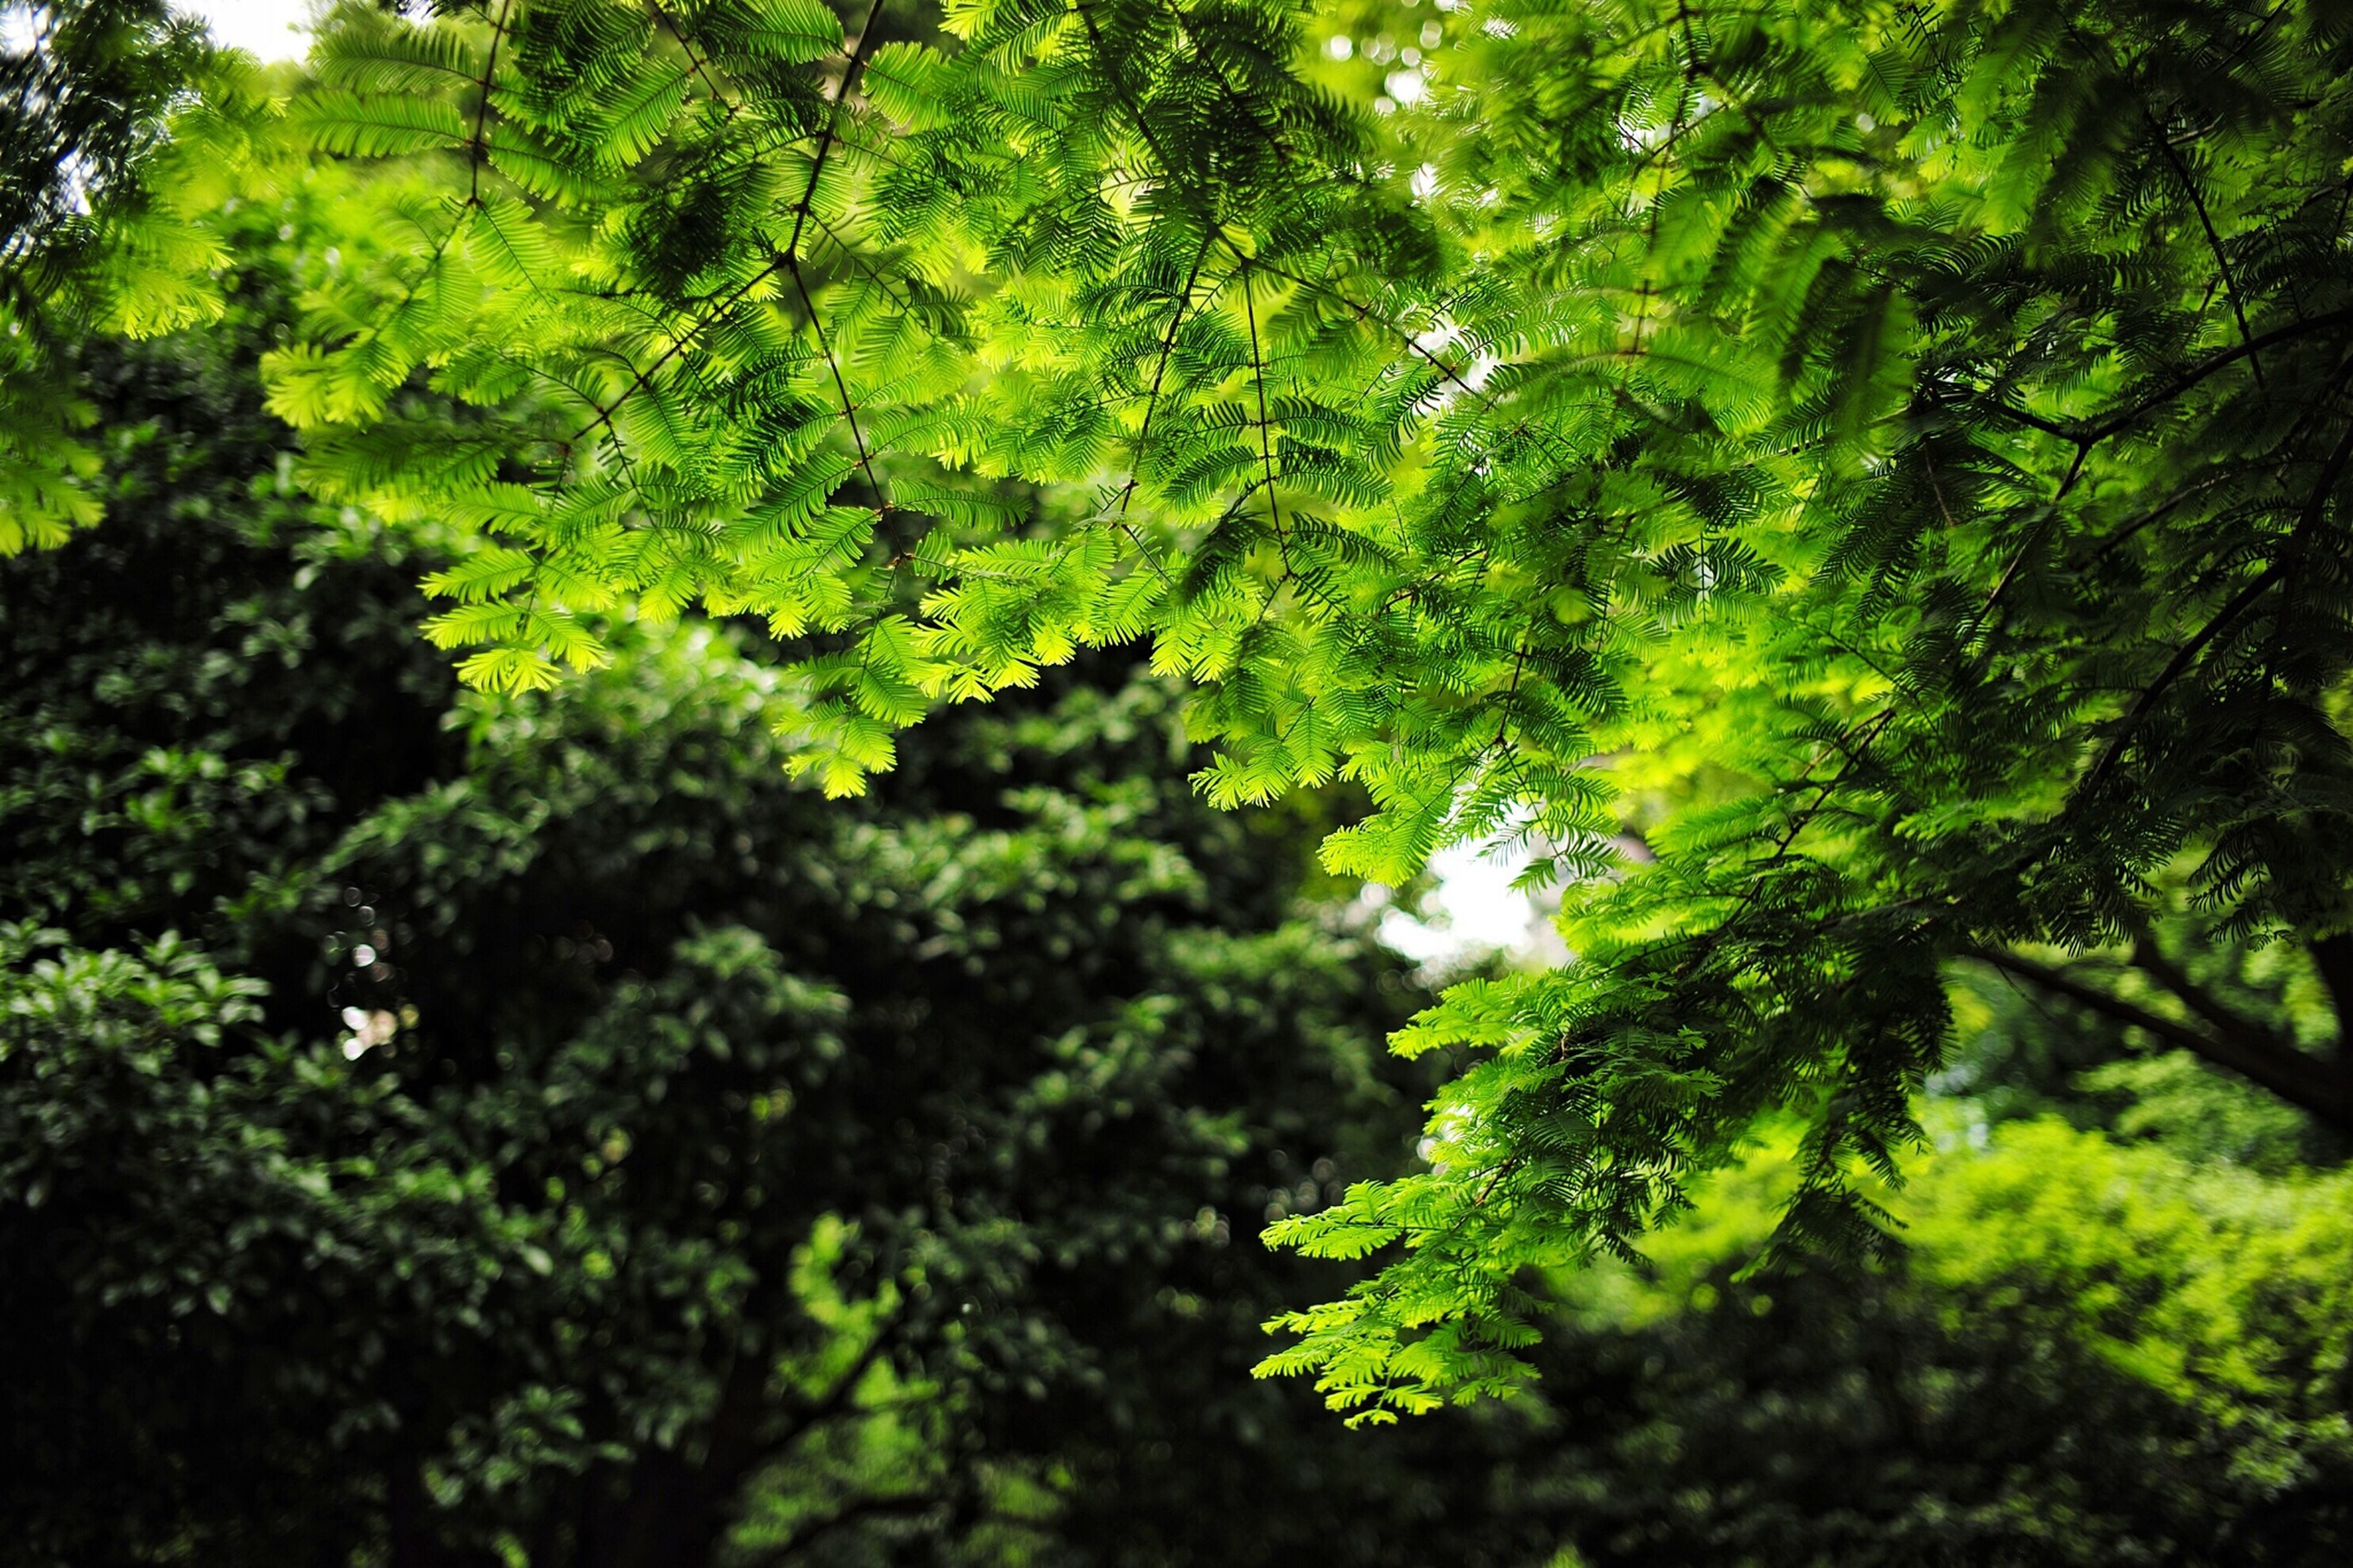 tree, green color, growth, leaf, lush foliage, branch, nature, tranquility, forest, beauty in nature, low angle view, green, tranquil scene, scenics, day, outdoors, no people, backgrounds, full frame, plant